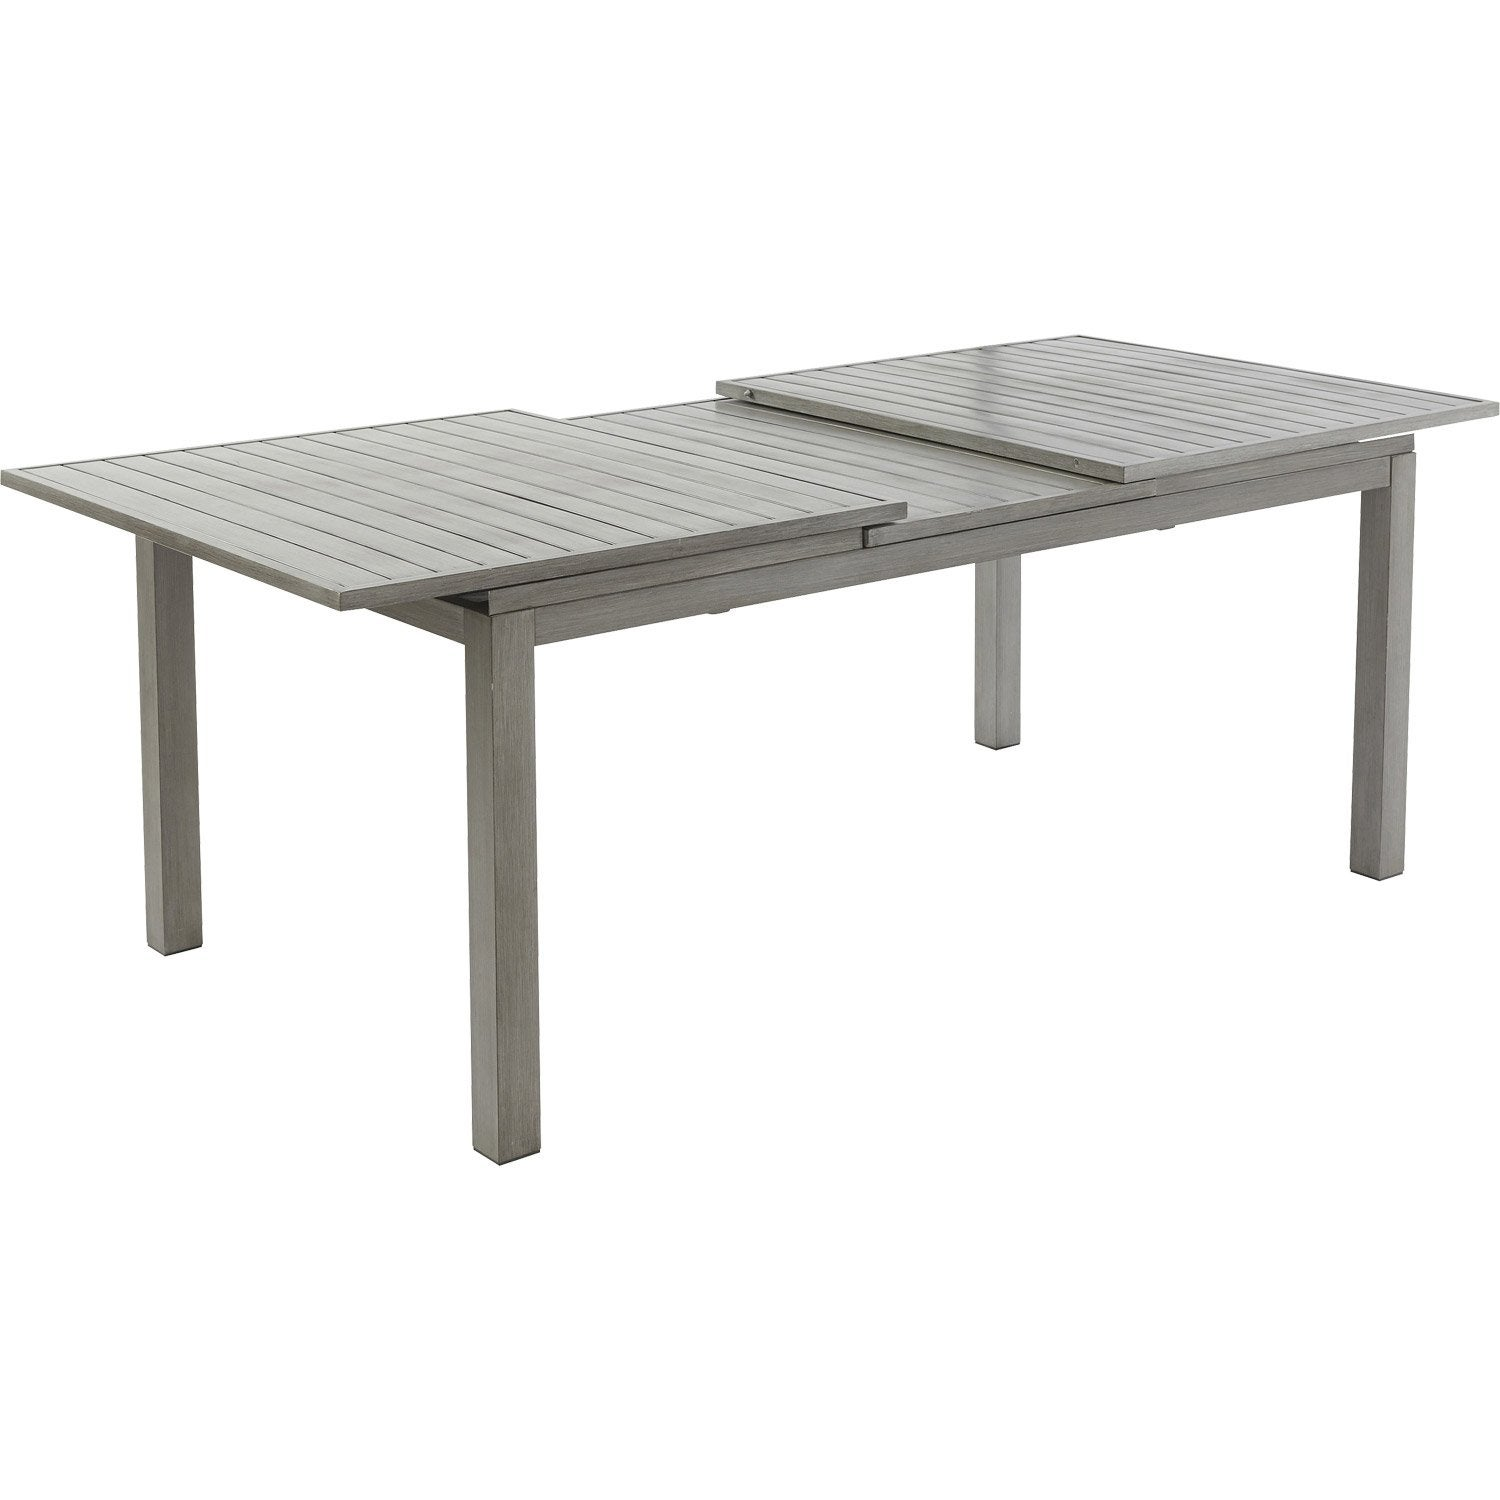 Table de jardin avec extension rectangulaire aluwood for Table cuisine leroy merlin